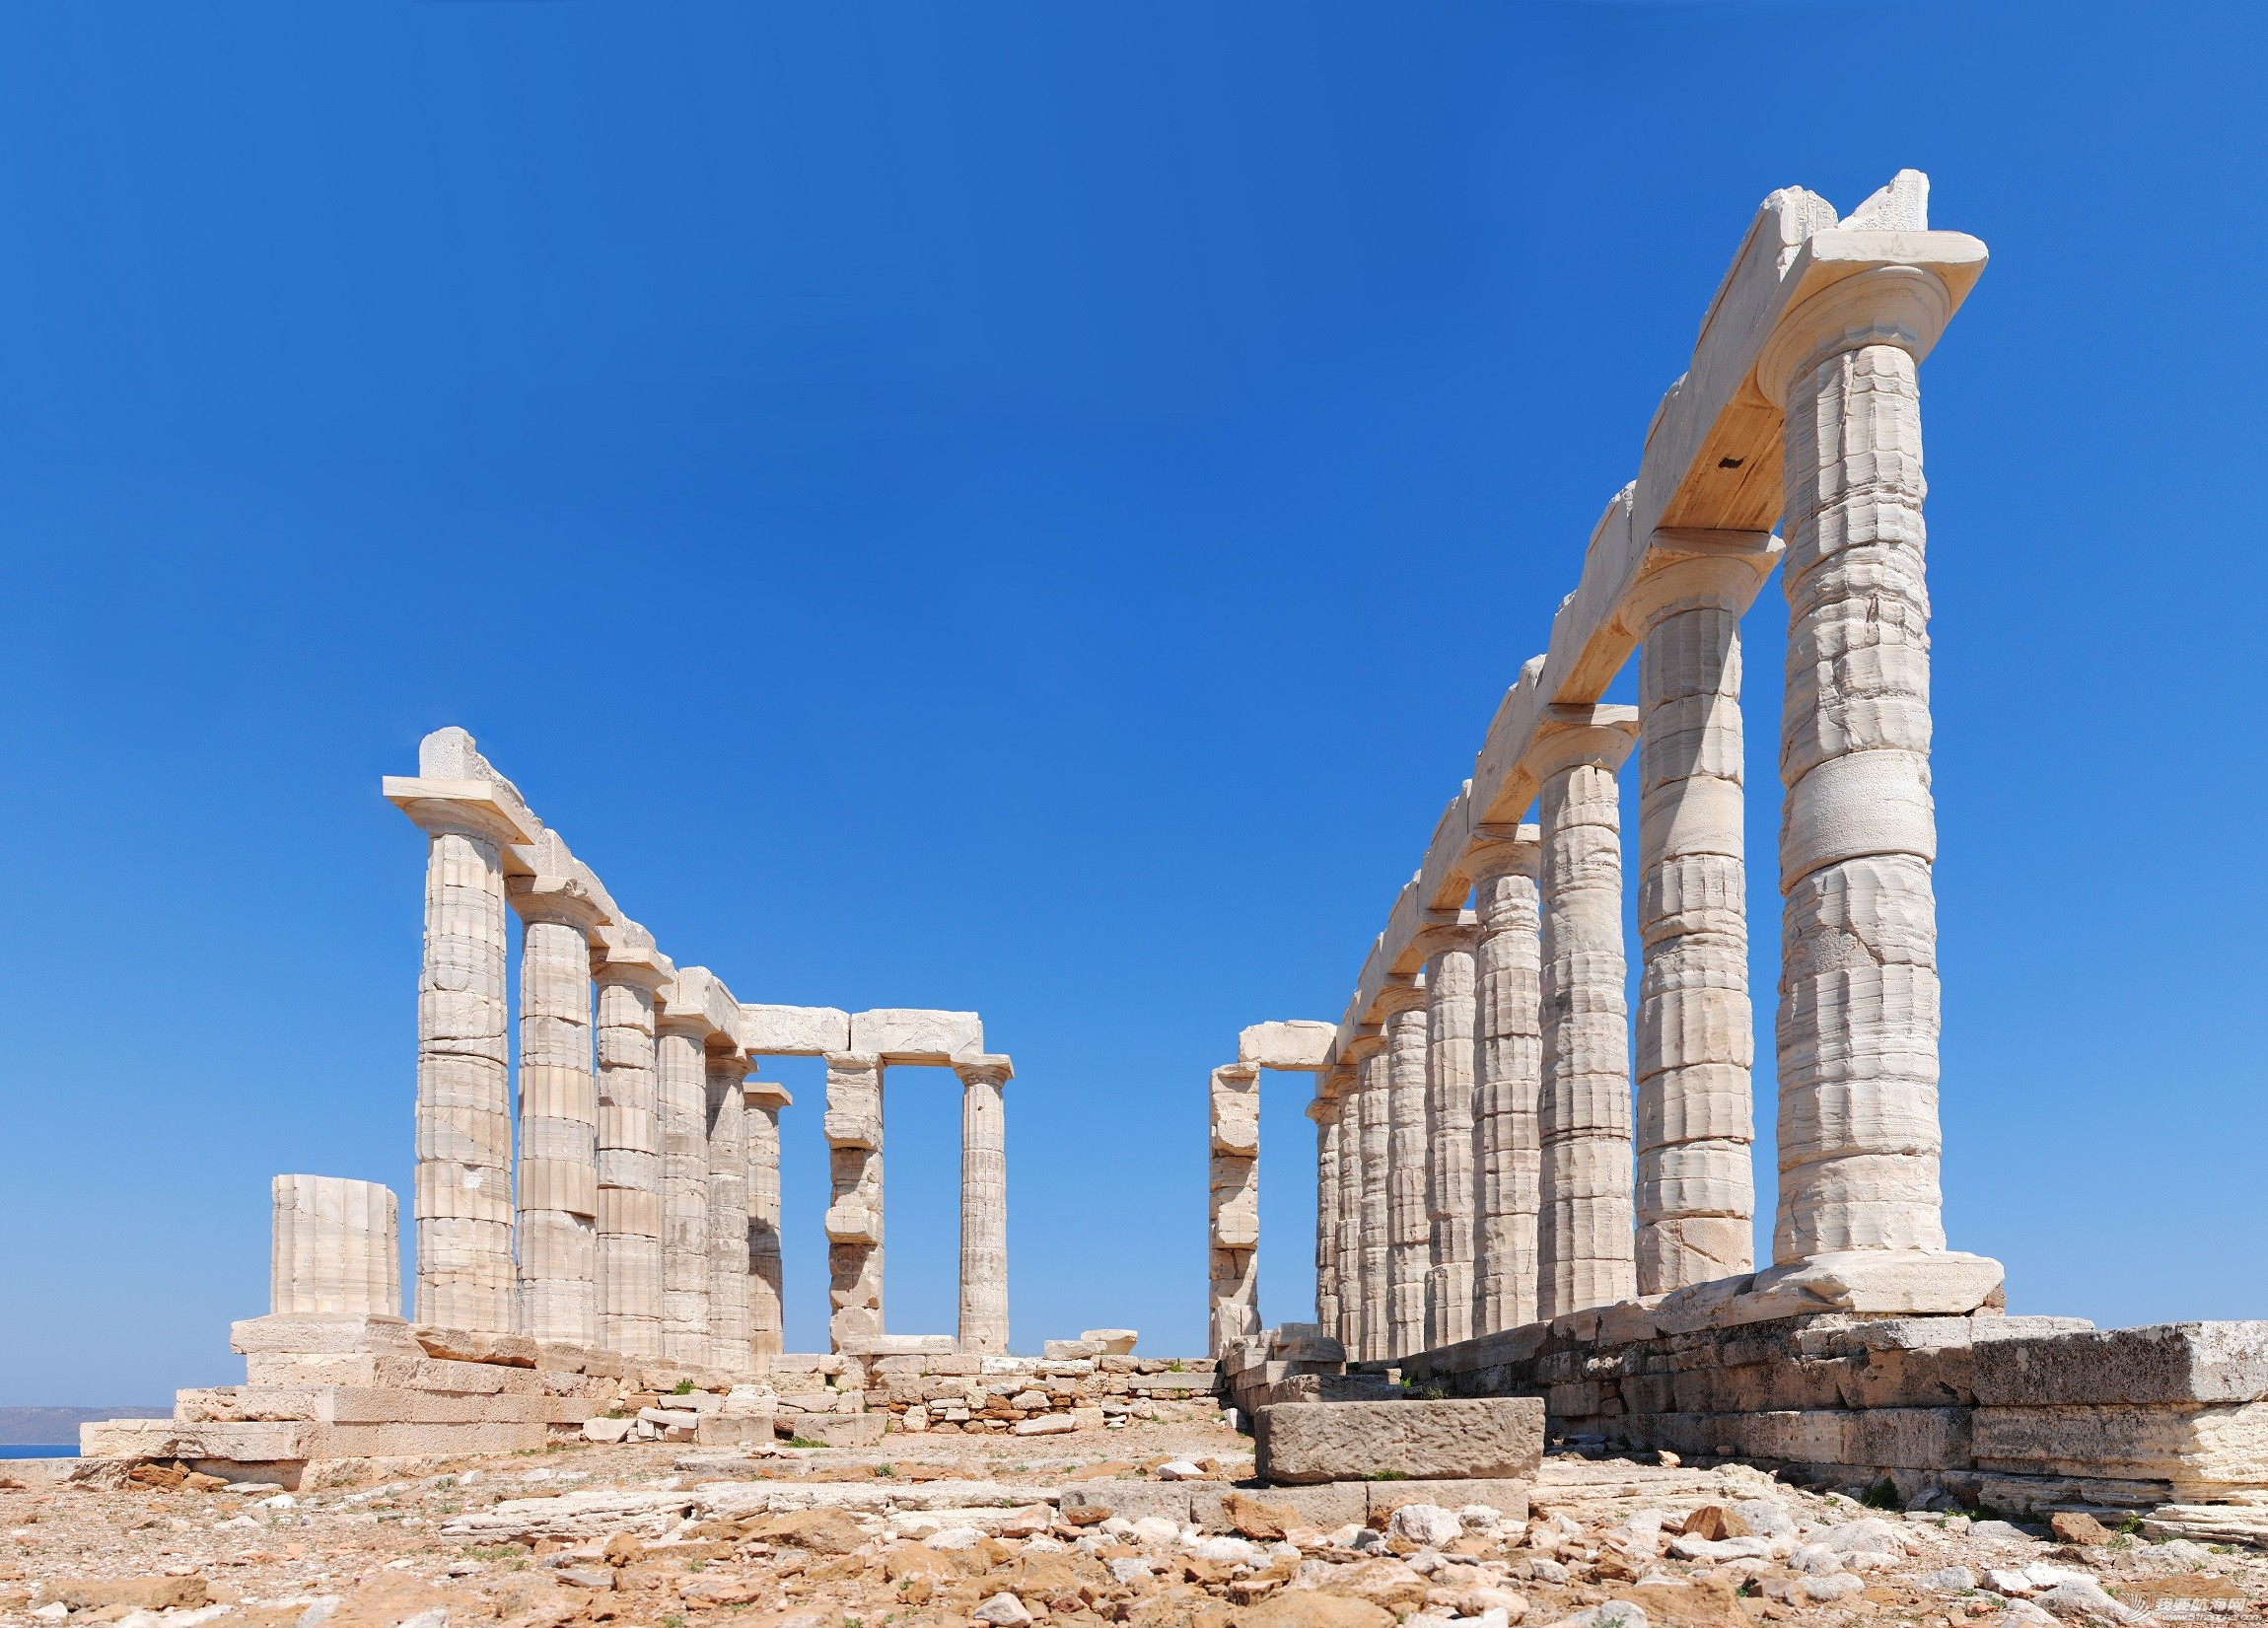 ϣ�����ٺ�,2014,����,�Լ� 2014�����Լݵ�һվ����ϣ�����ٺ����������� Cap_Sounion5.jpg